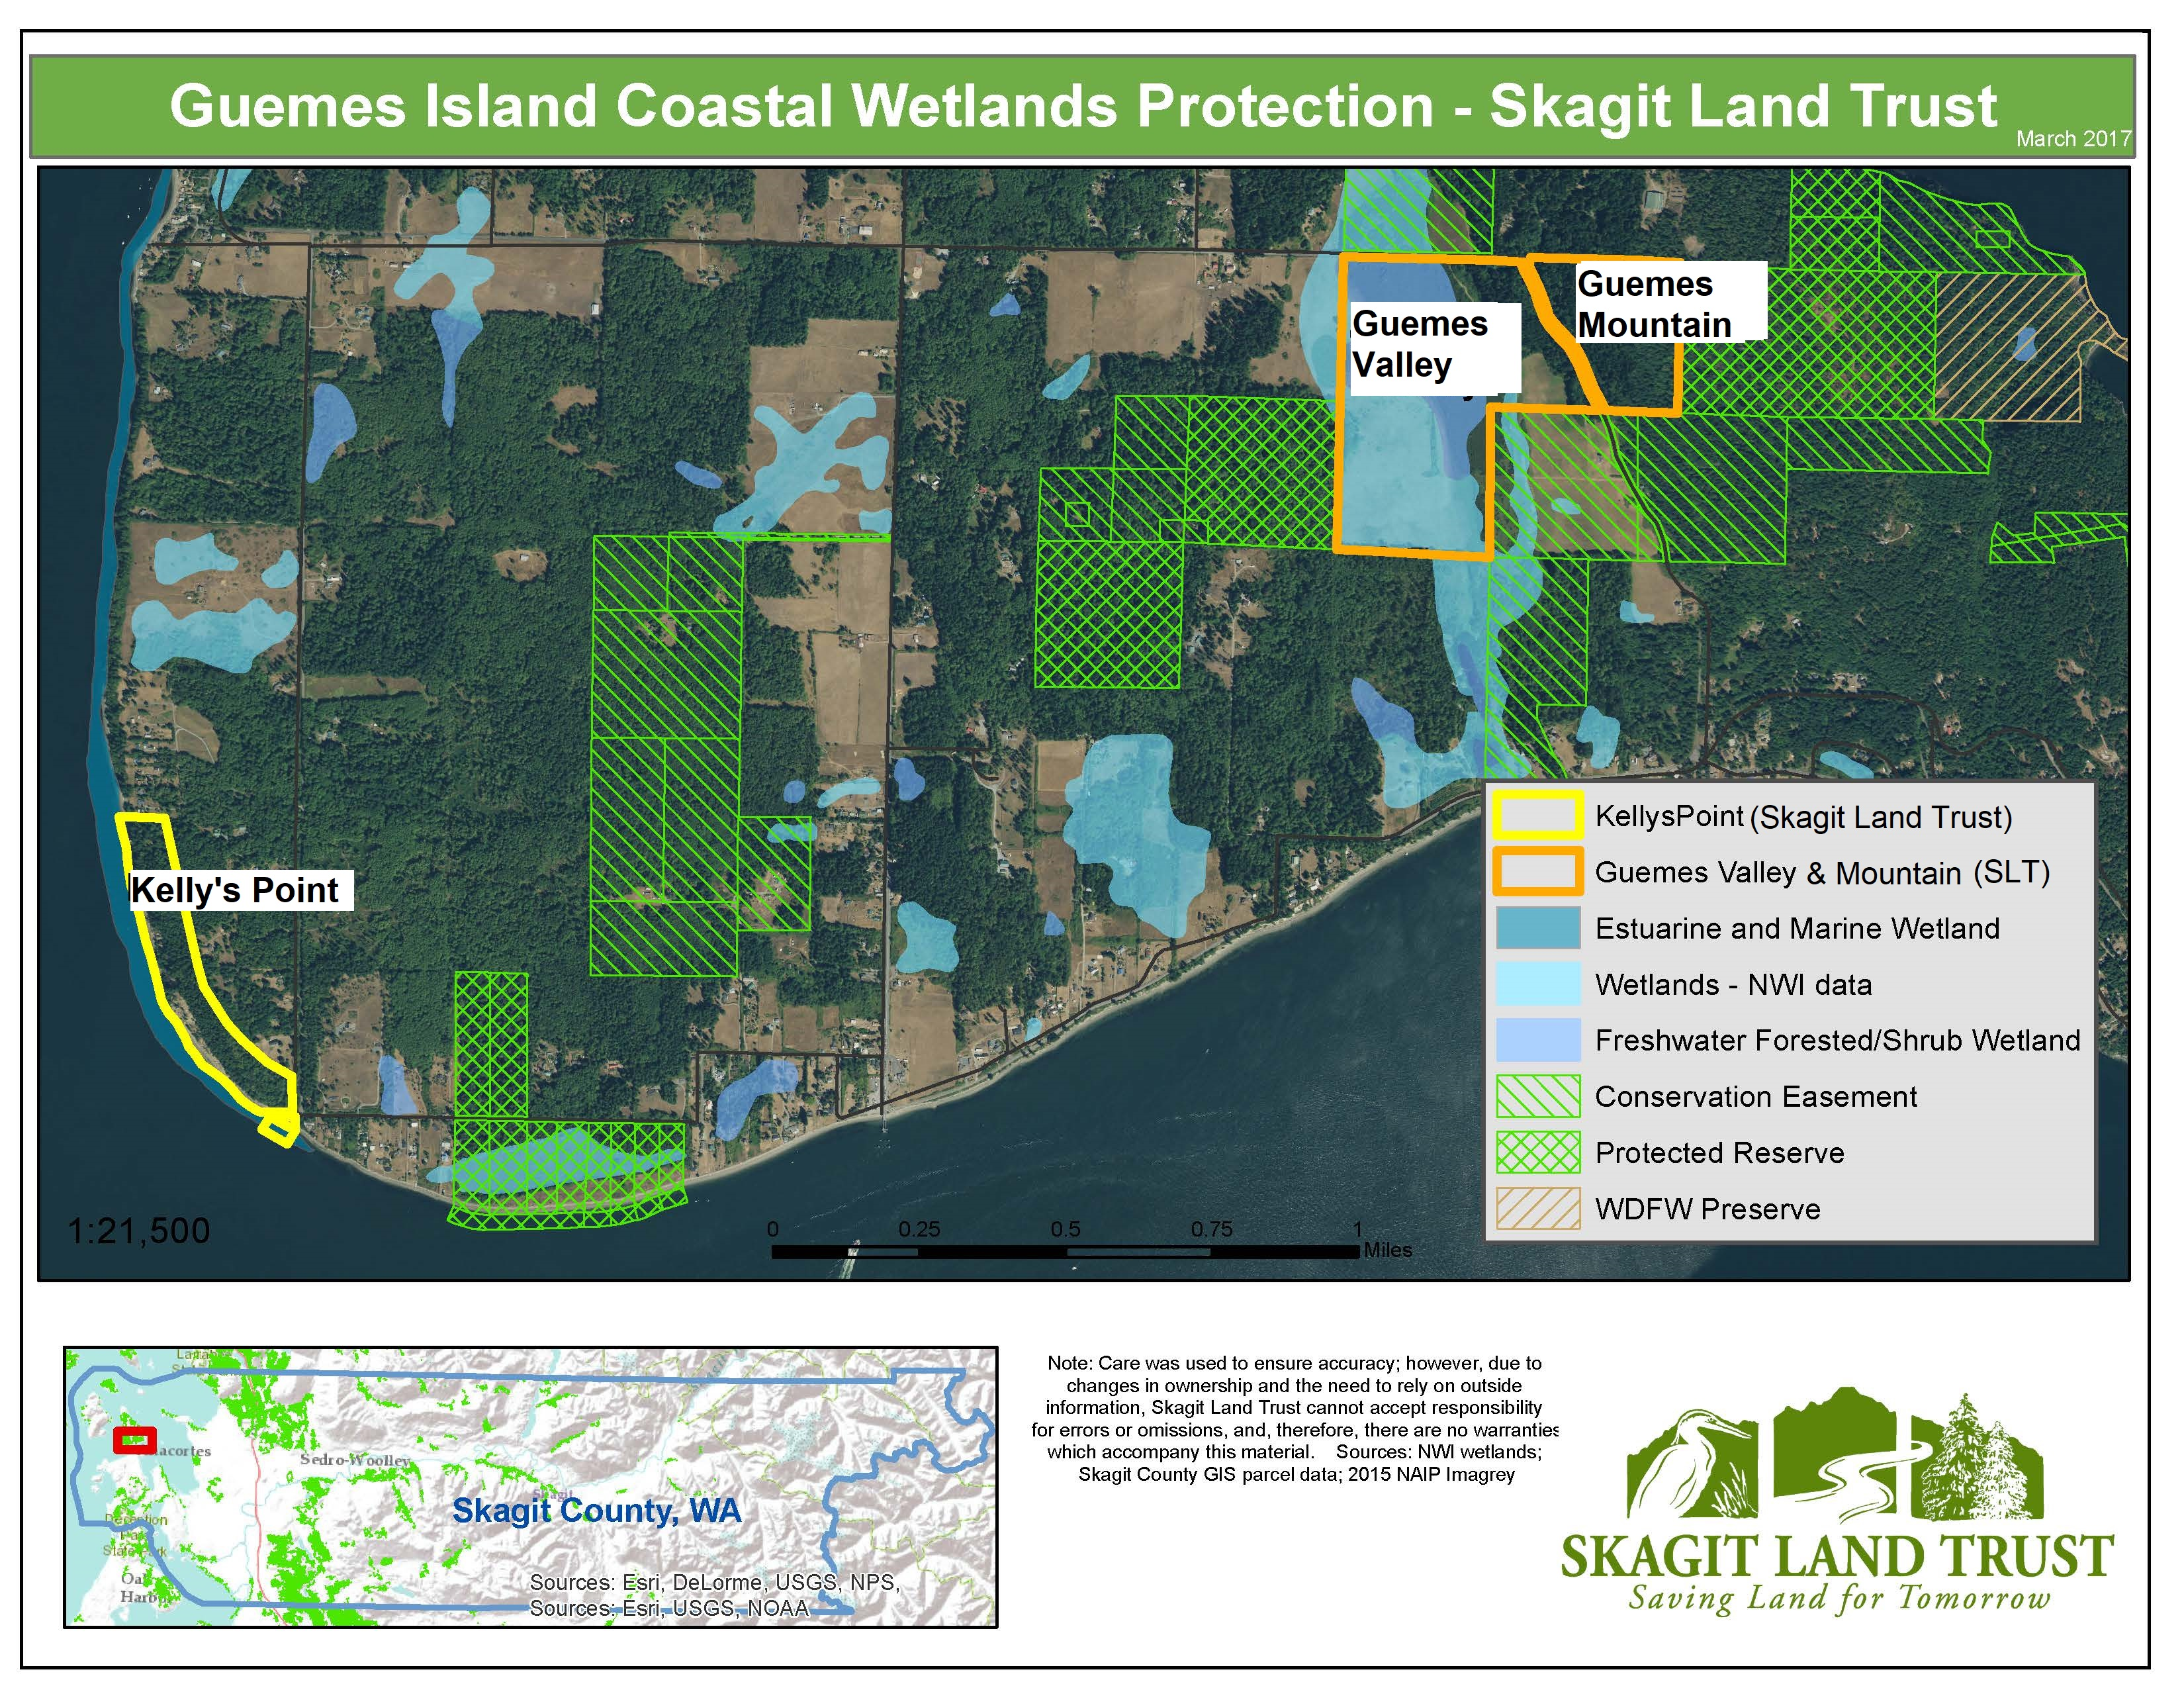 Map of Guemes Island Coastal Wetlands Protection and Wildlife Corridor. Map generated in GIS by Skagit Land Trust staff (2017).